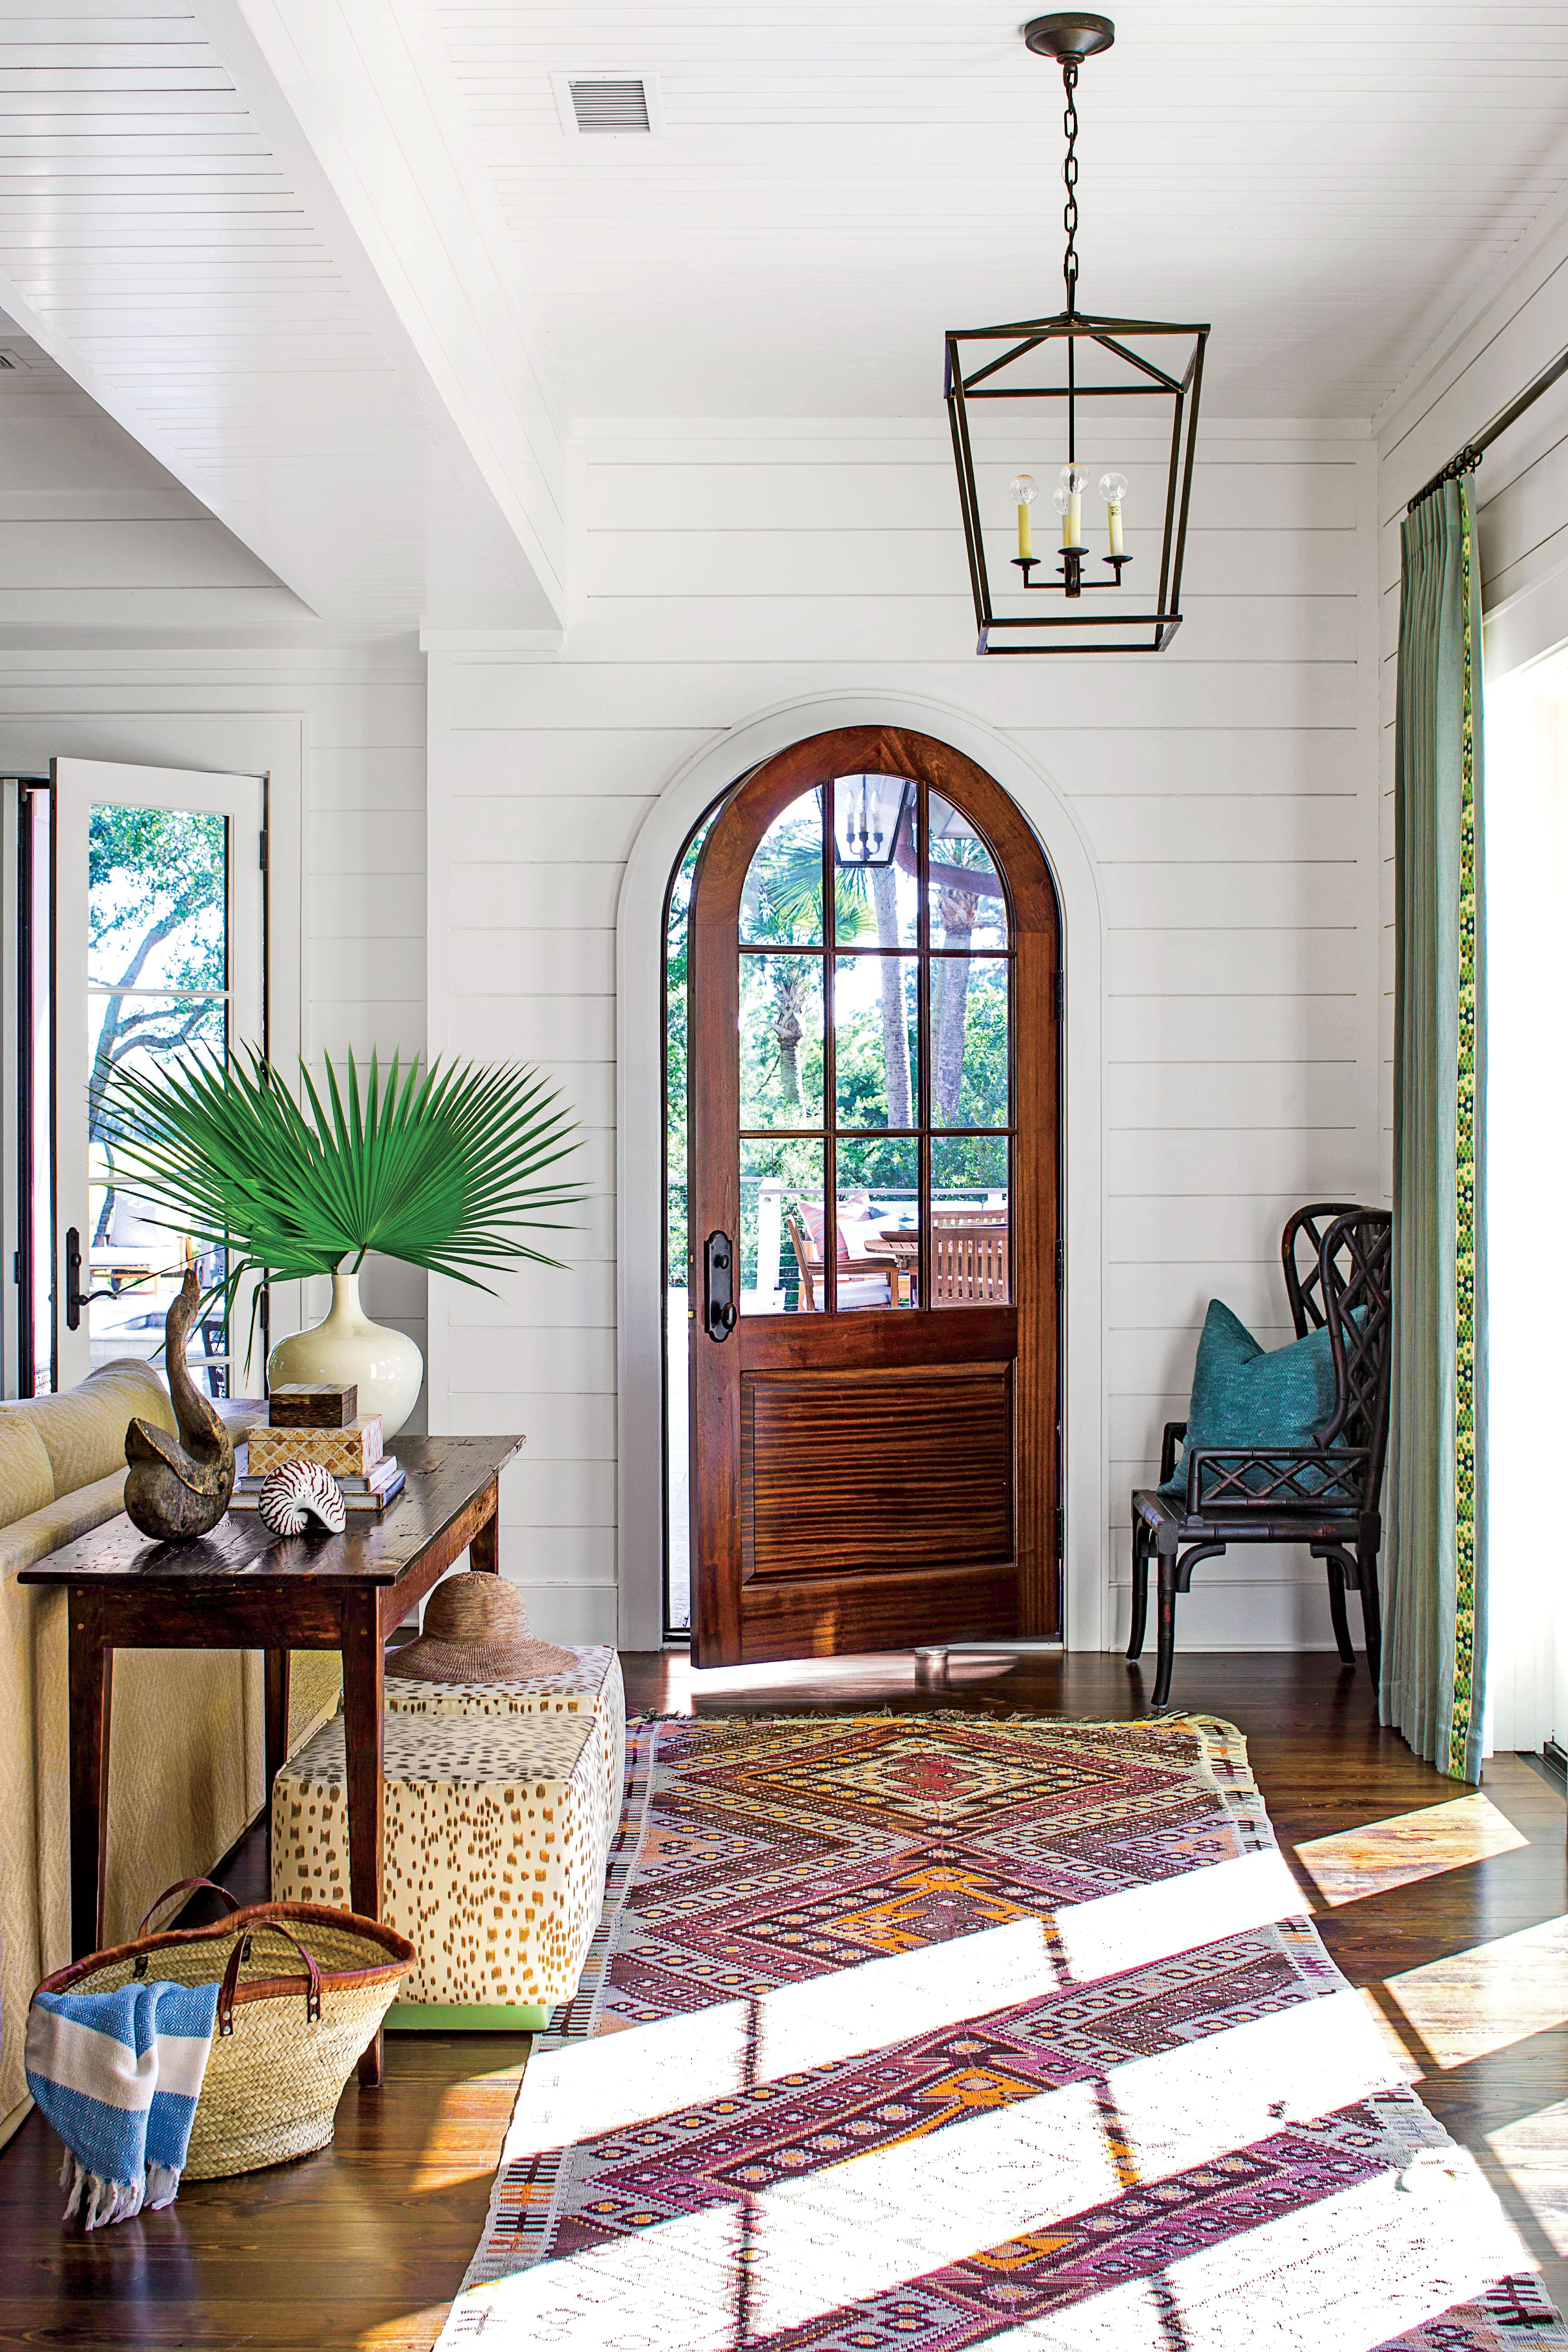 homeowners tall design trgn livi dallas wall are decor living designer ideas decorating of to many room for michaels on unsure decorate blog their foyer pl interior how story